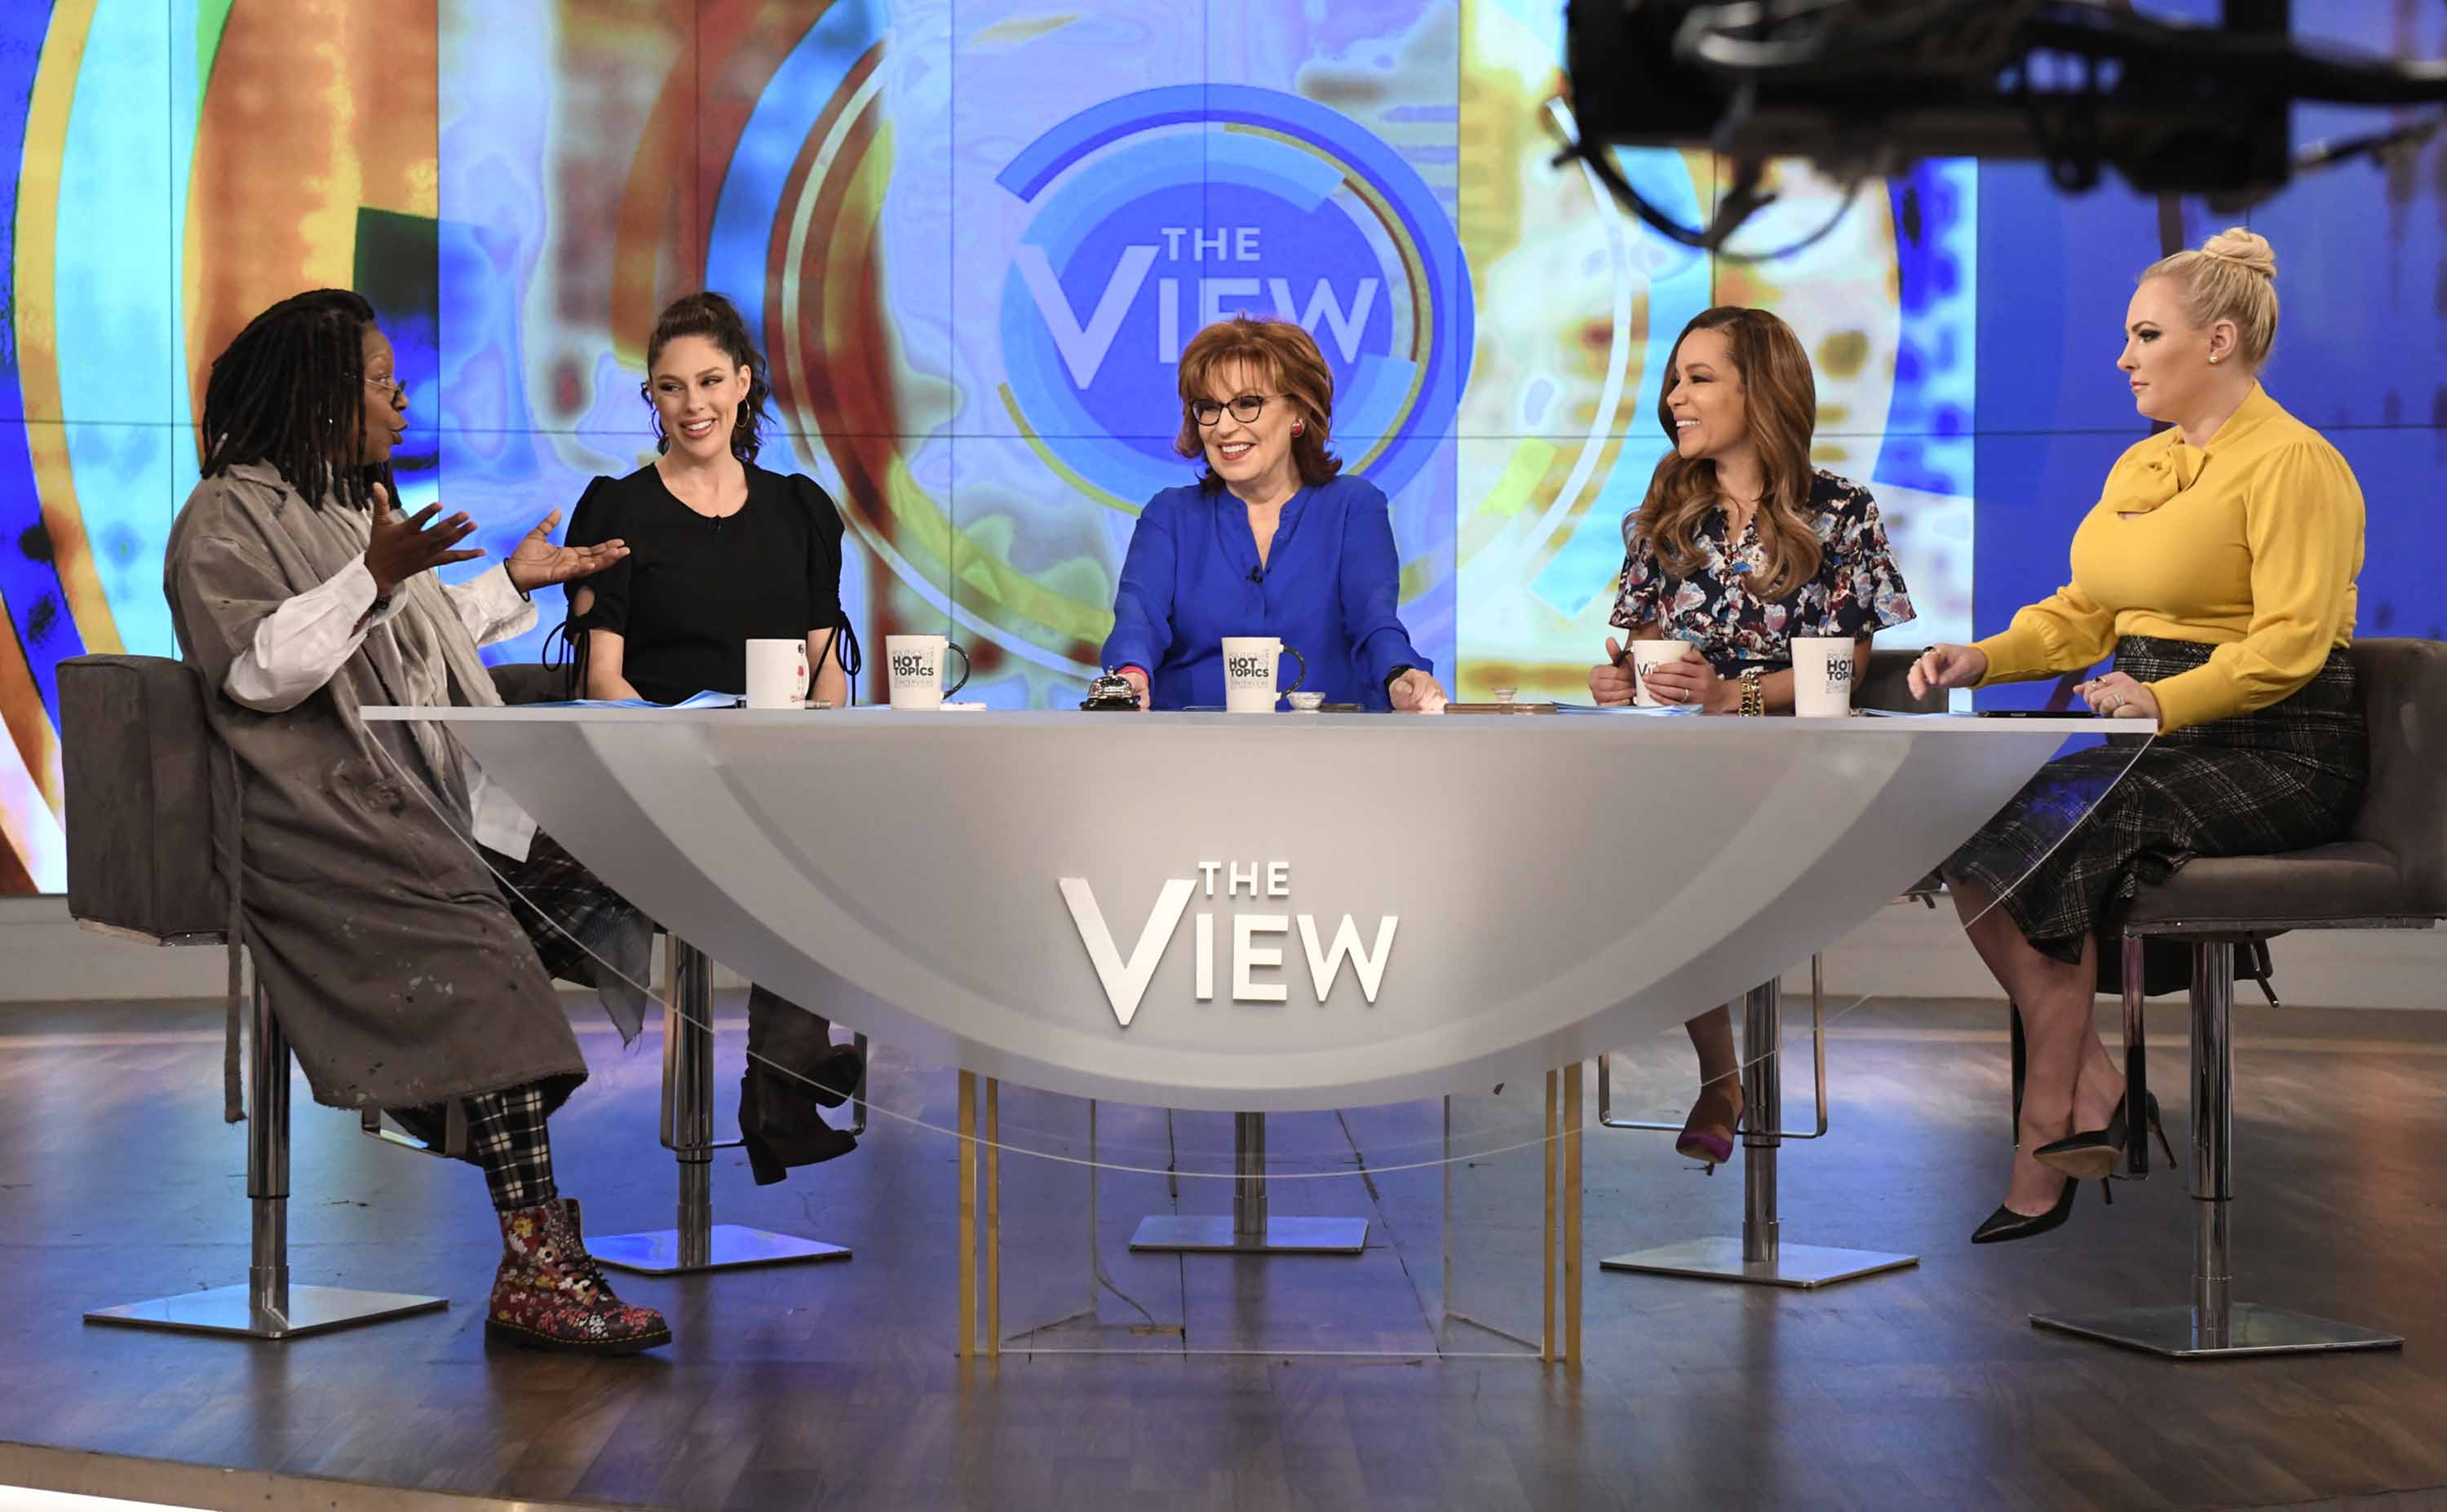 """Presenters of Walt Disney Television's show """"The View""""are pictured on set in March 2019."""